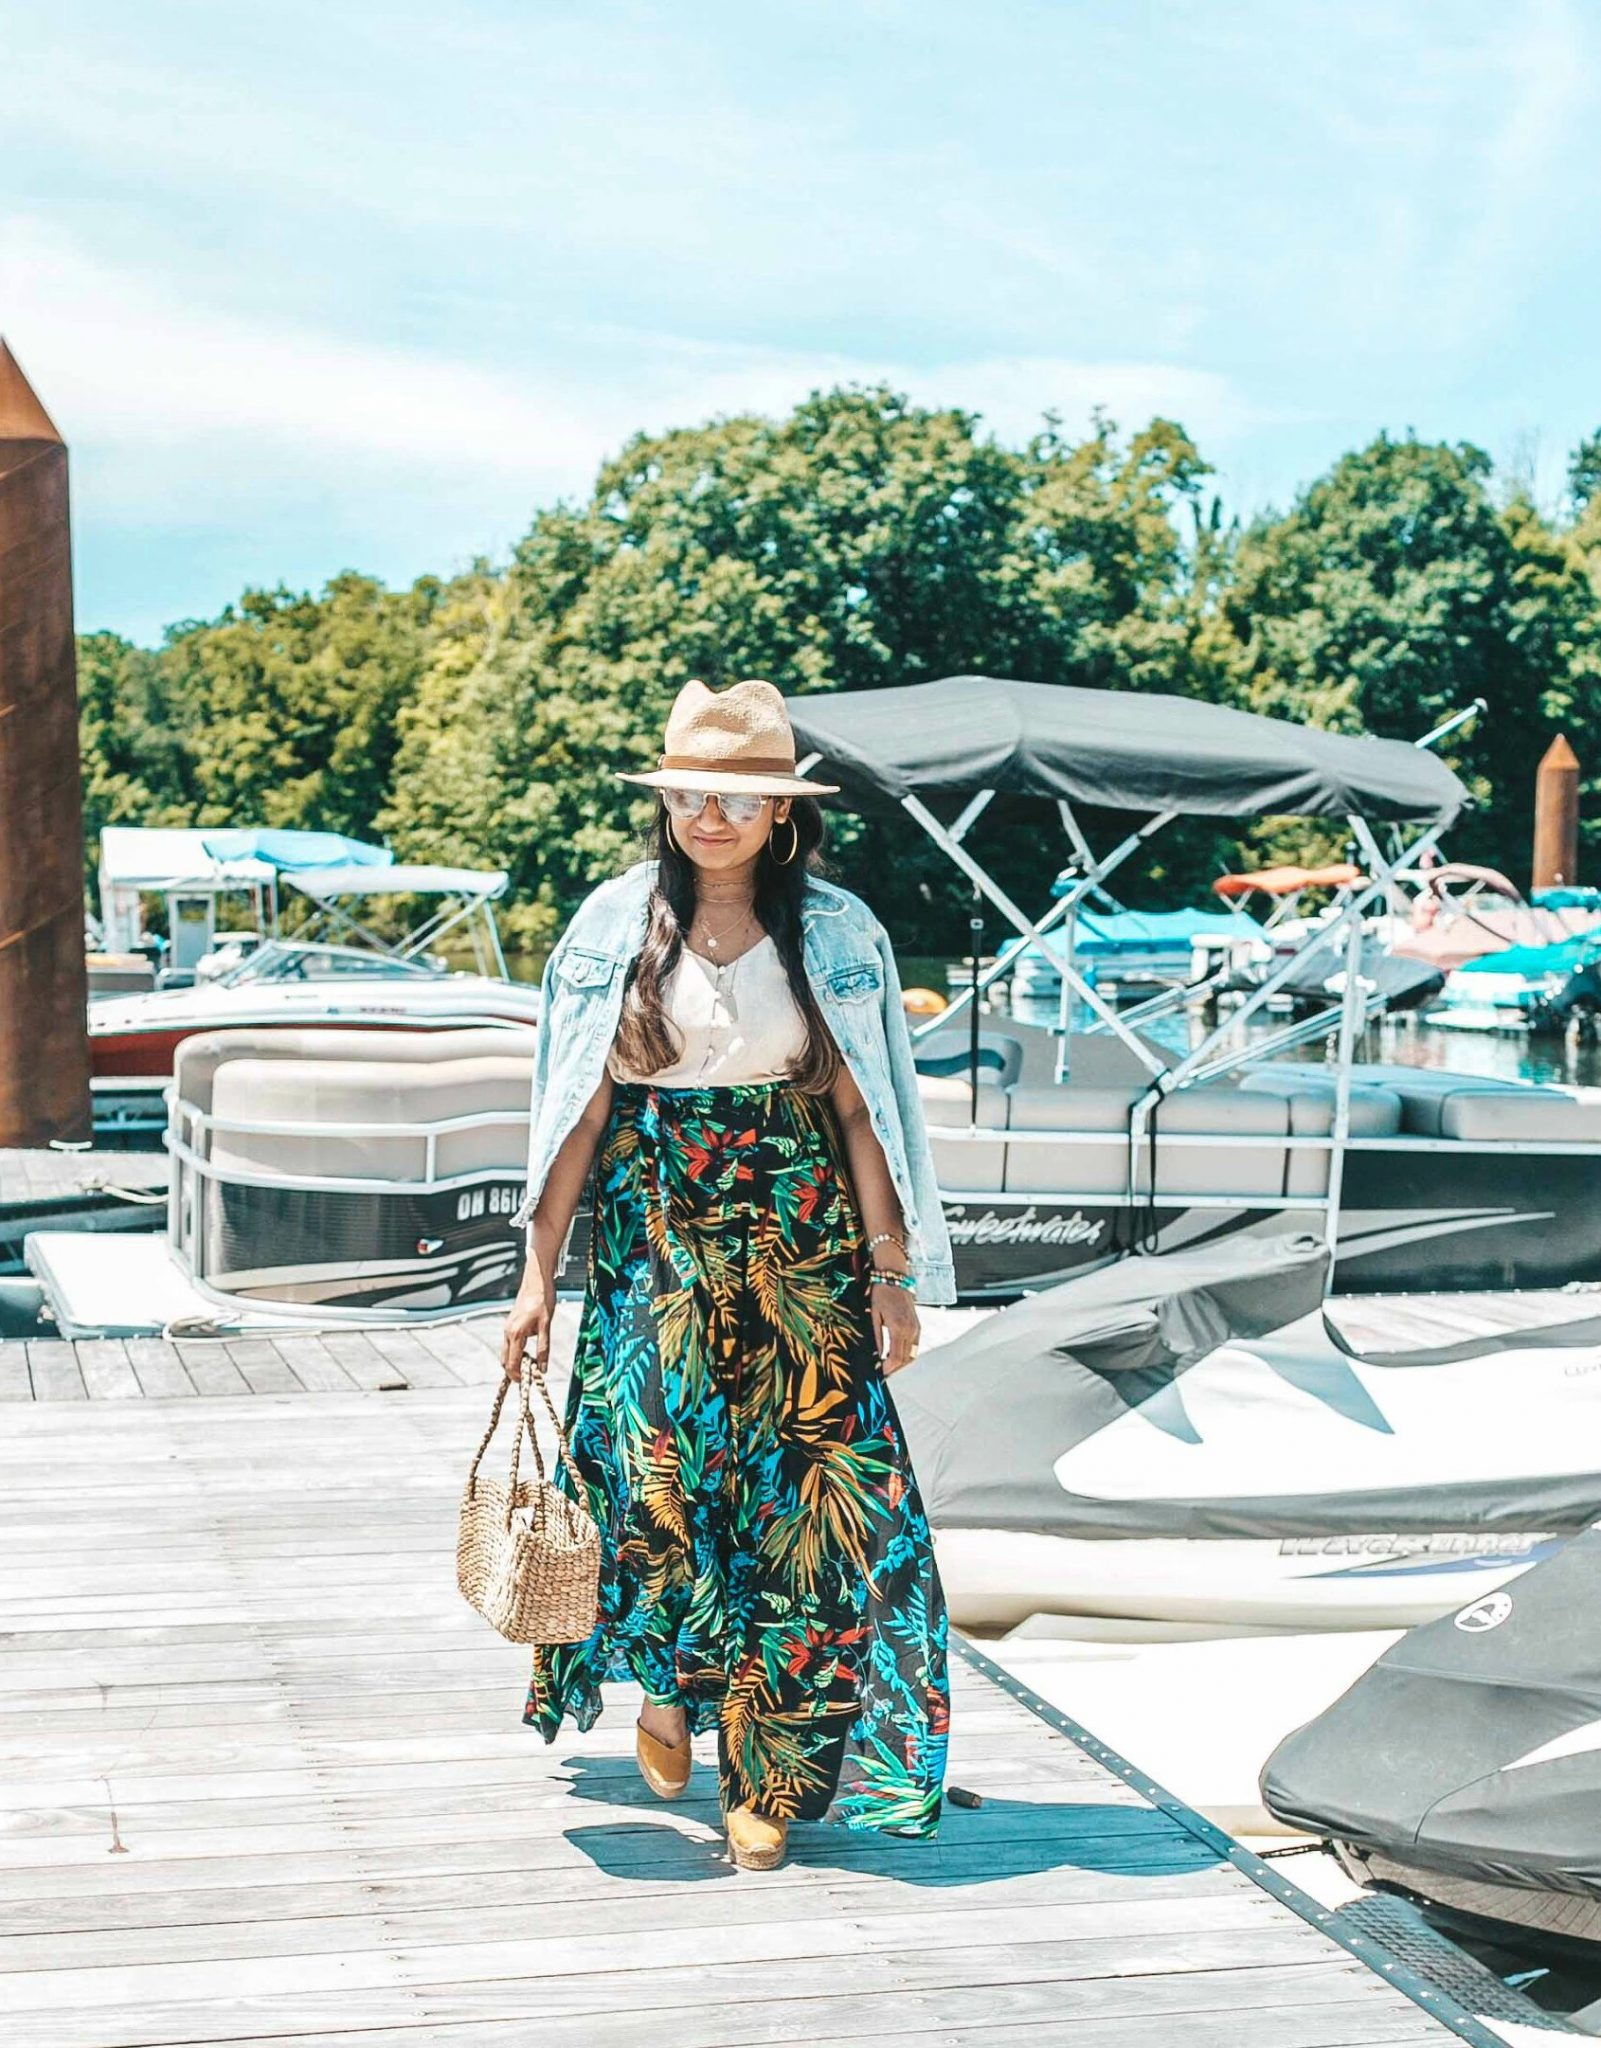 Popular US Modest Fashion blogger, Dreaming Loud, shares What to wear to a beach getaway - Shein Tropical Print Skirt featured by popular US modest fashion blogger, Dreaming Loud